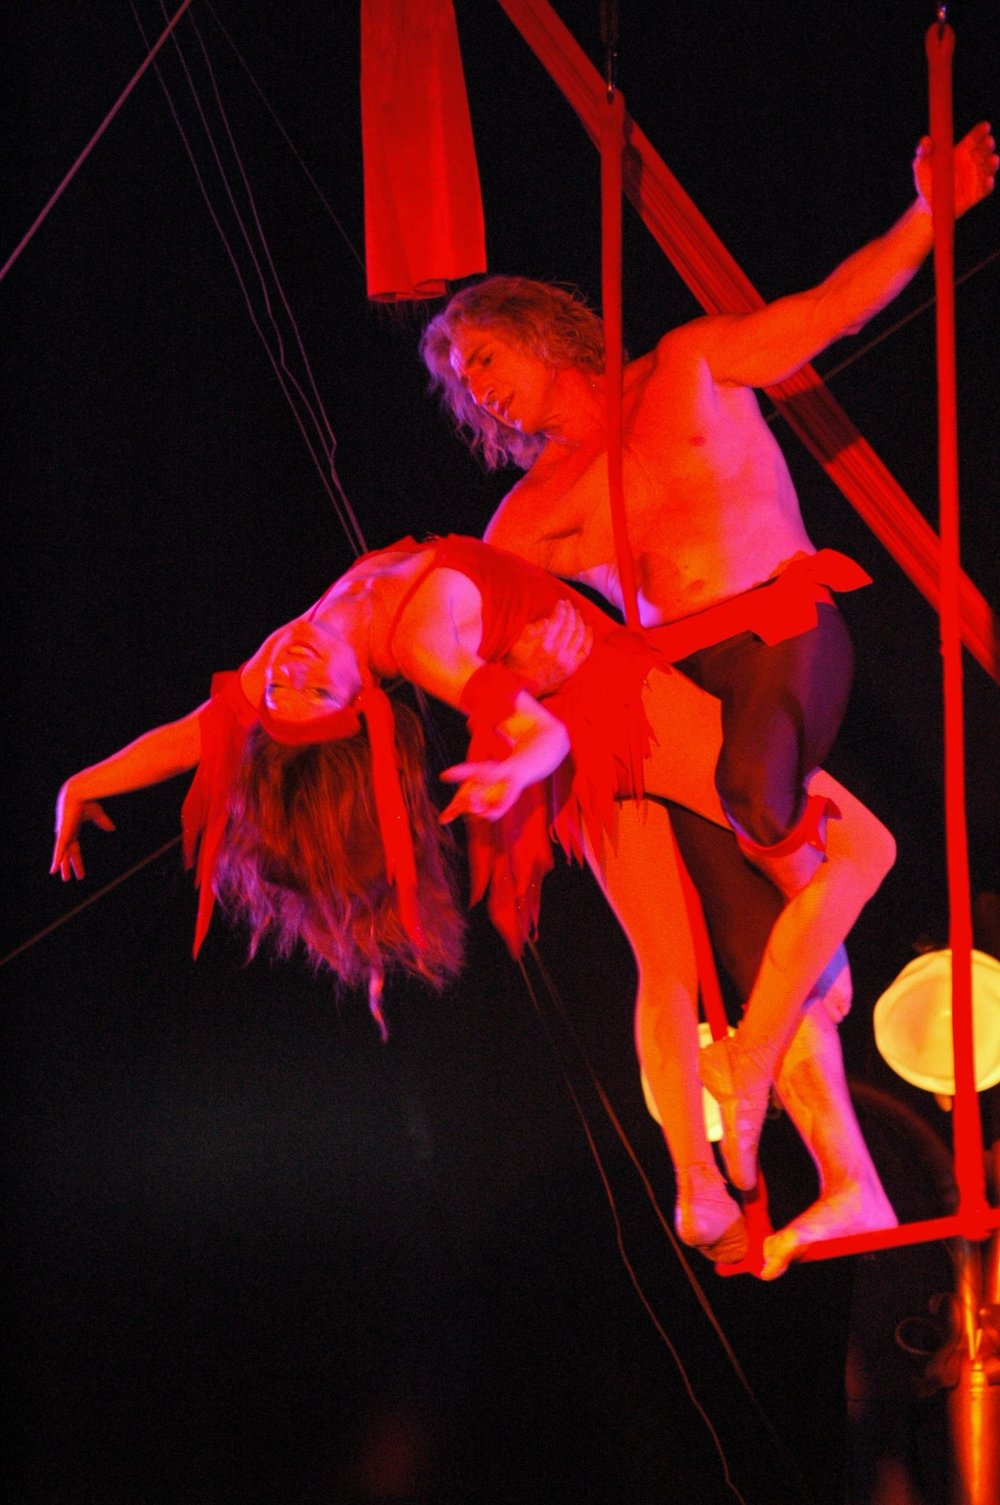 Melinda & Sacha - Melinda's husbaND sacha Pavlata first trained her as an aerialist in 2004 for circus flora.  (photo at left by Harald boerstler of Circus Flora).  they went on to perform this artistic trapeze duet around the world: in singapore, with cirque passion, at the baltimore museum of art, the wallenda family circus in taiwan, amazing grace circus and for redbull's art of the can exhibit in boston.  Melinda loved combining the newfound power of her aerial circus muscles with her dance training and went on to create elegant performances on aerial hoop (lyra), aerial fabric (silks), aerial sling and corde lisse.